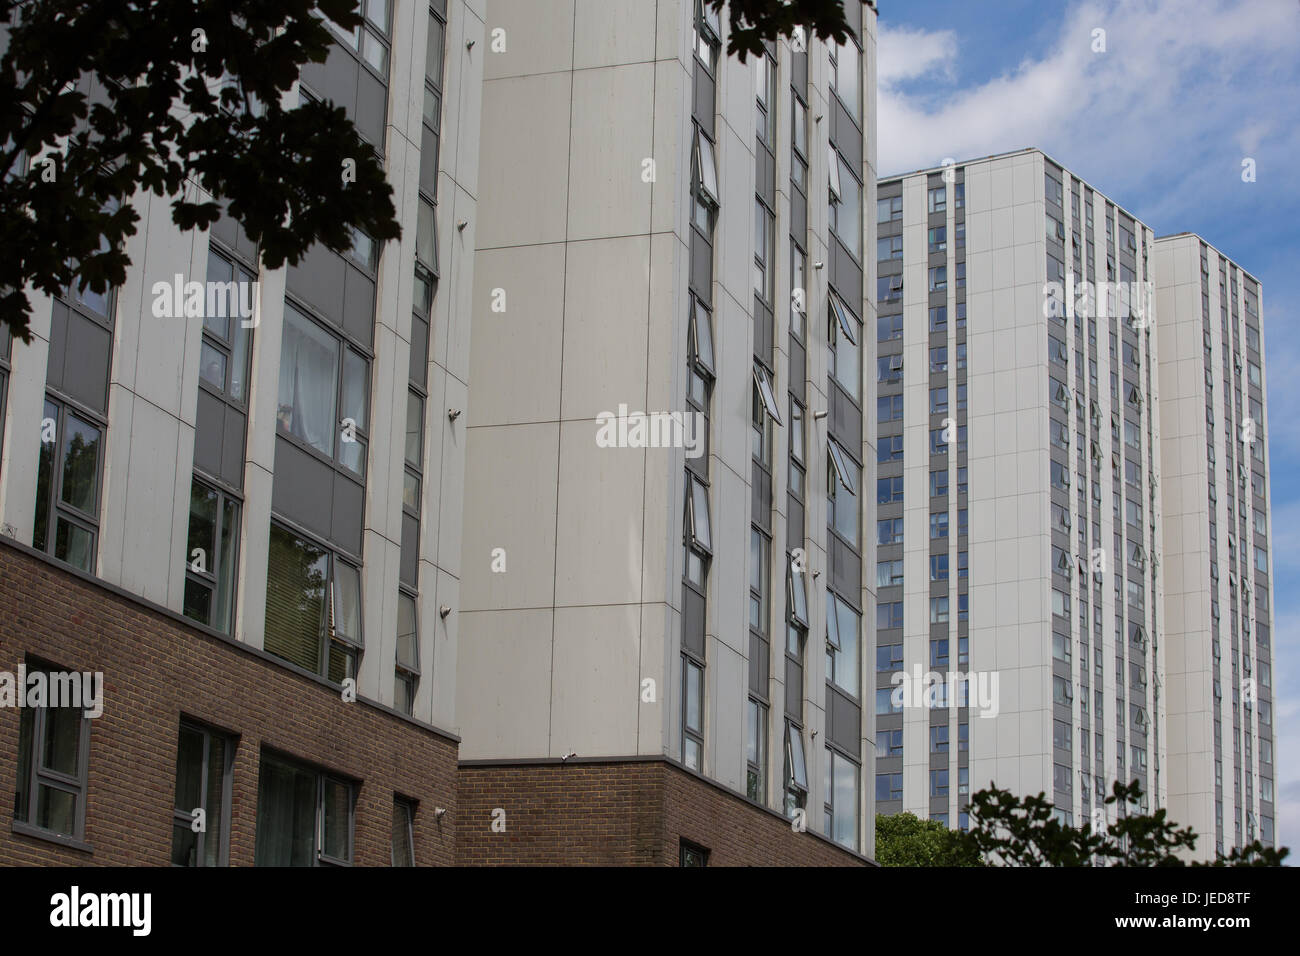 London, UK. 23rd June, 2017. Cladding panels on Taplow and Burnham Towers on the Chalcots Estate in Camden. 600 - Stock Image